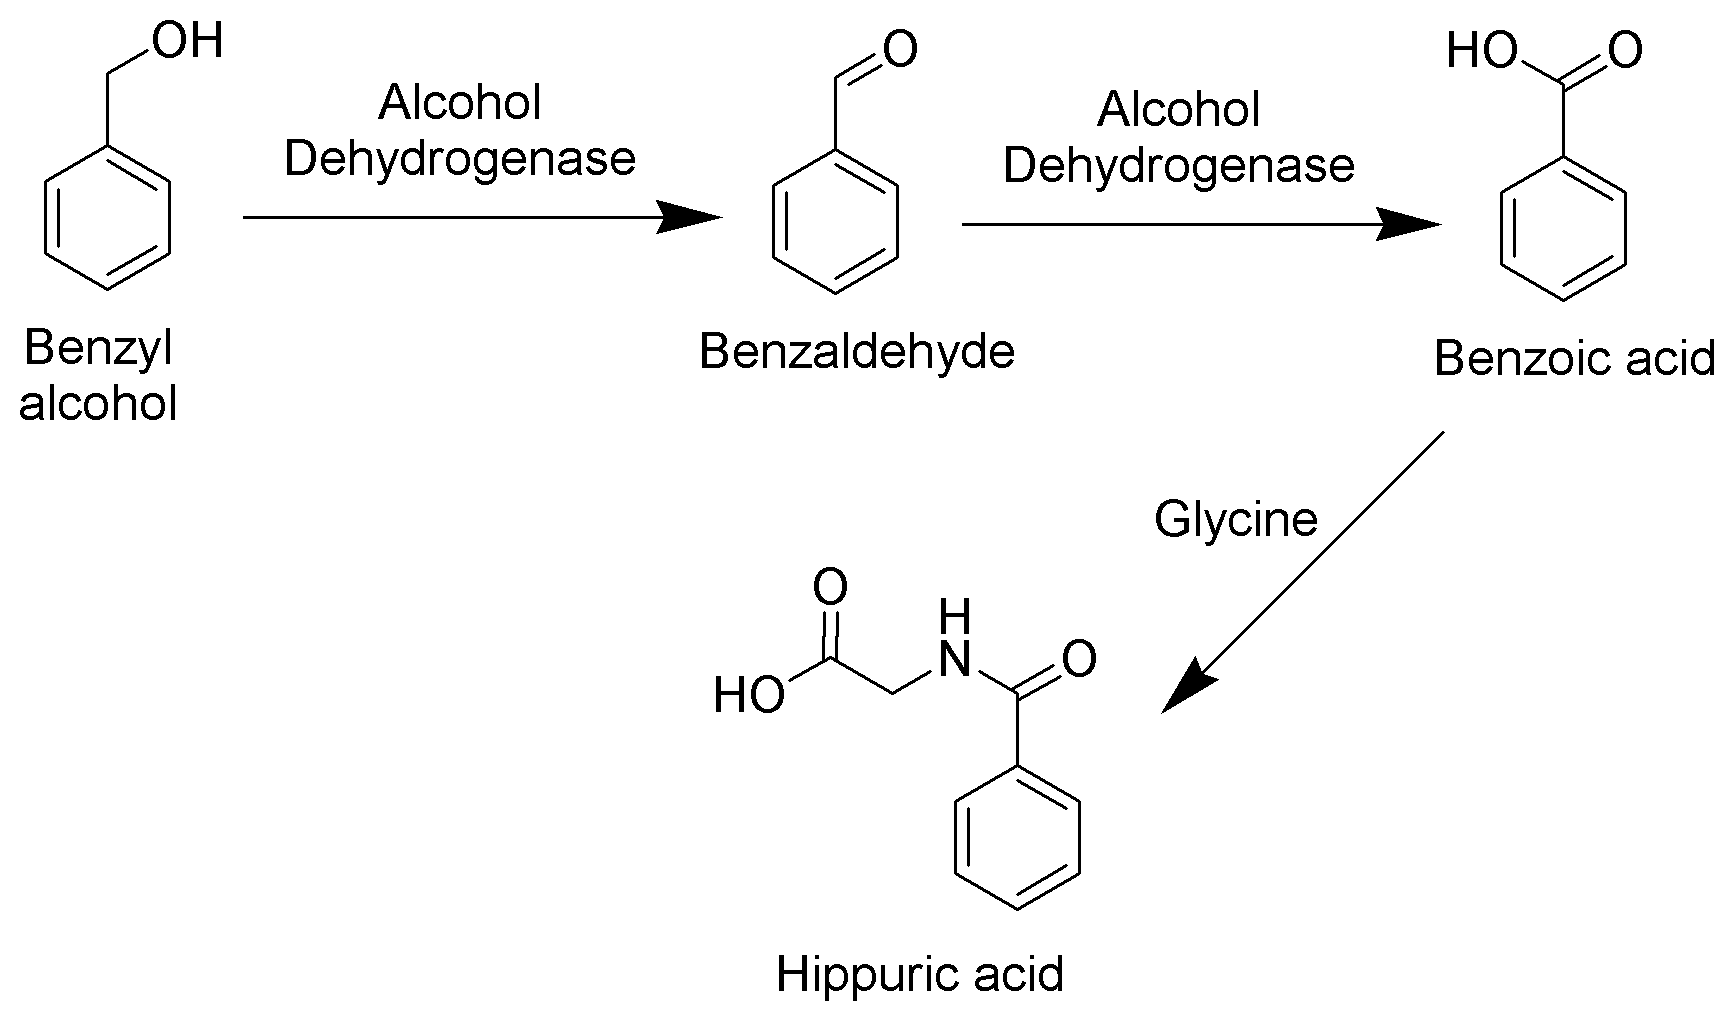 File:Benzyl Alcohol Metabolism Scheme.png